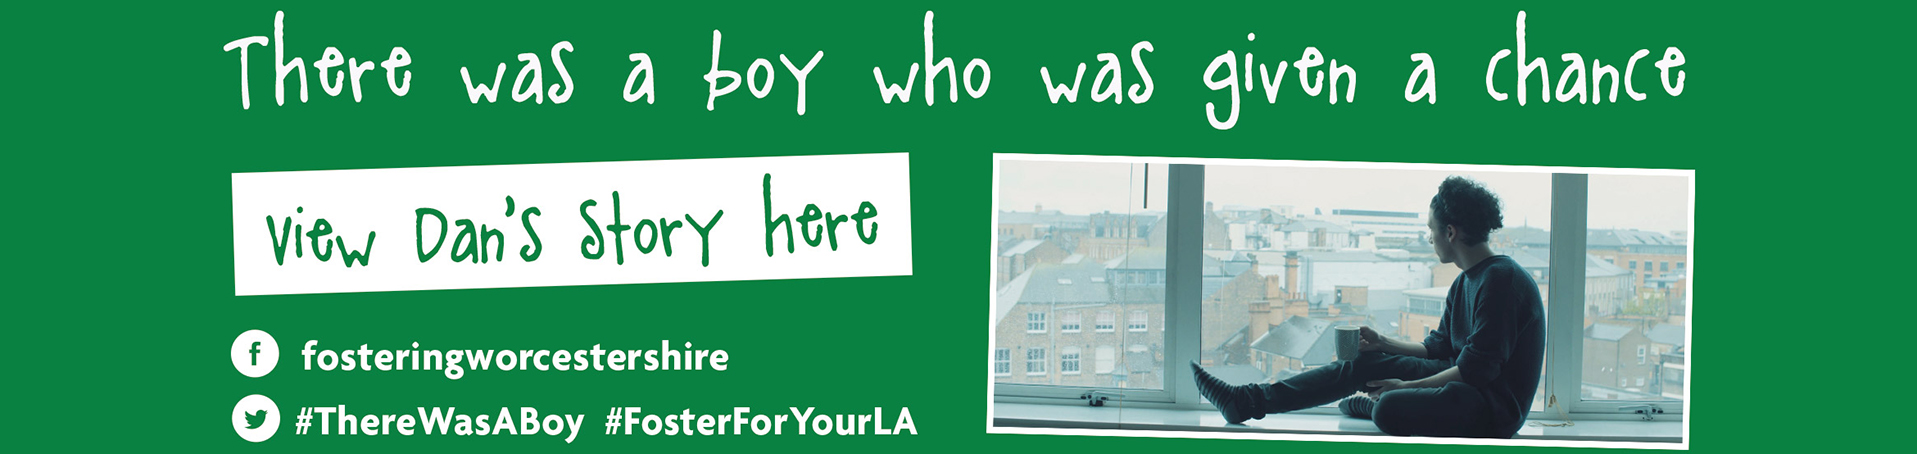 There was a boy who was given a chance click the image to find out more information